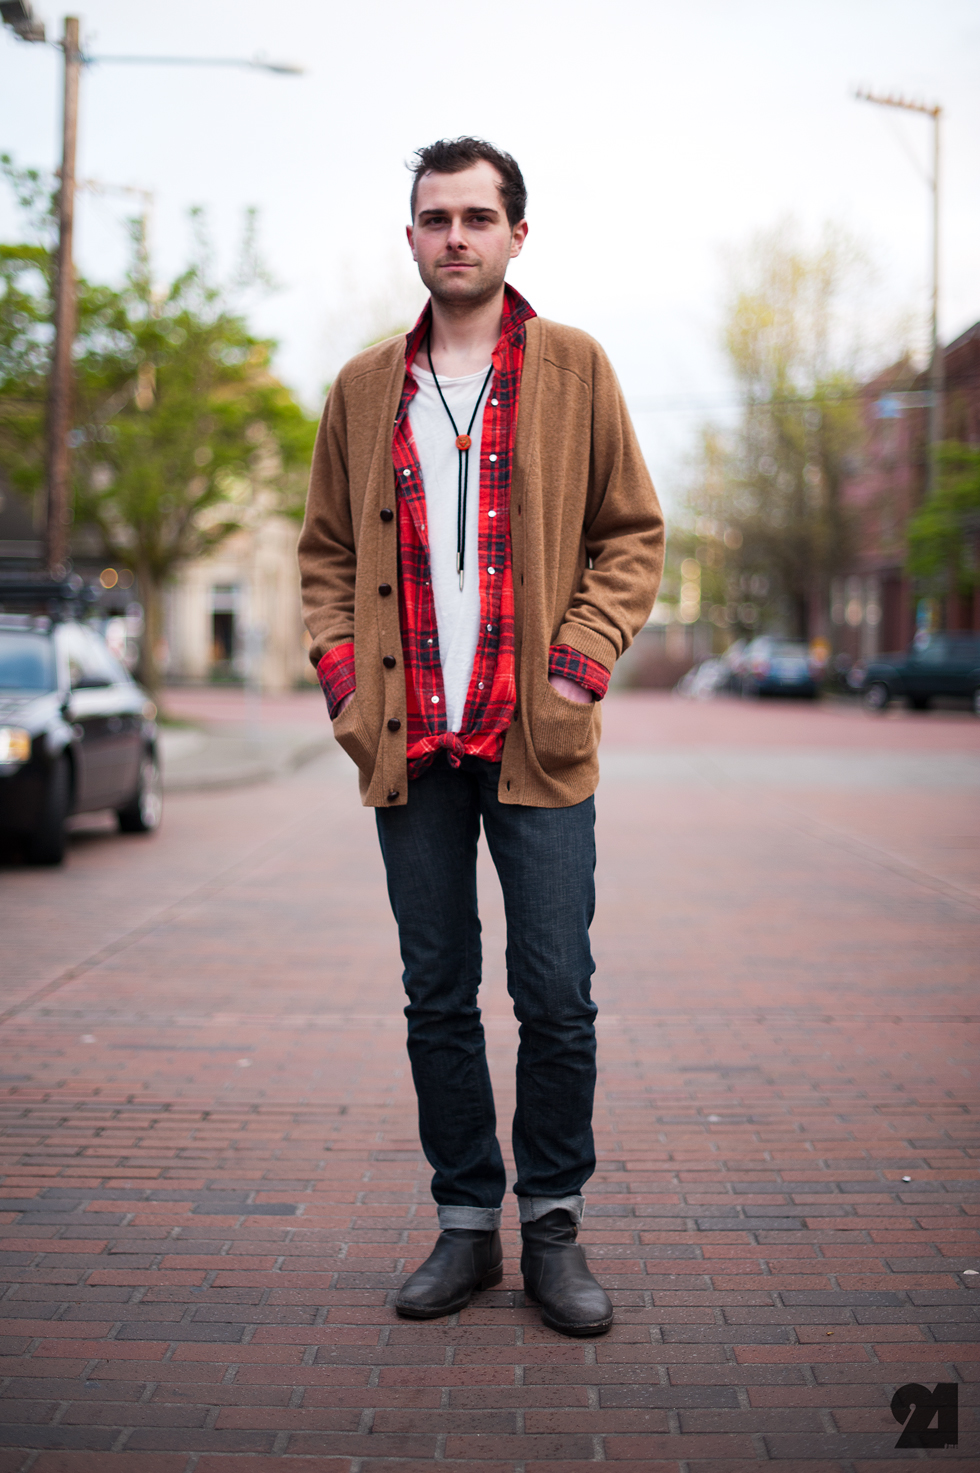 hipster guy fashion tumblr - photo #31